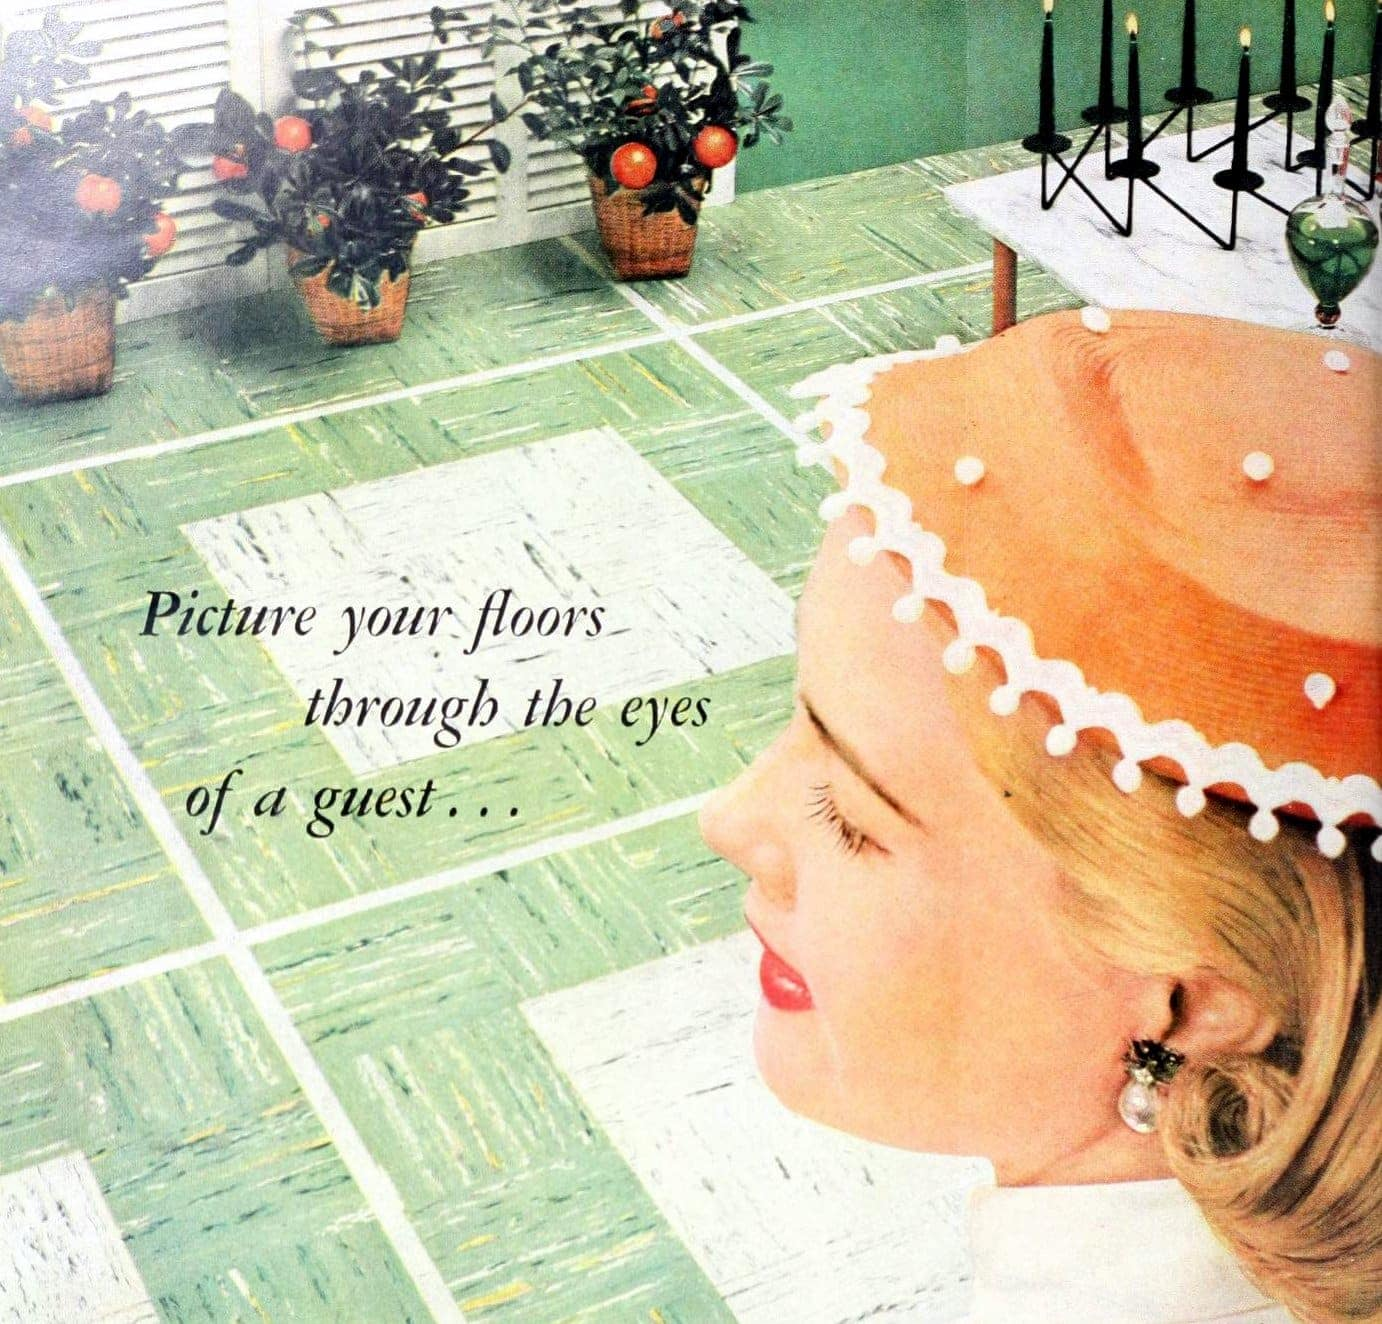 Retro woman from 1955 checking out white and green vinyl tile floor